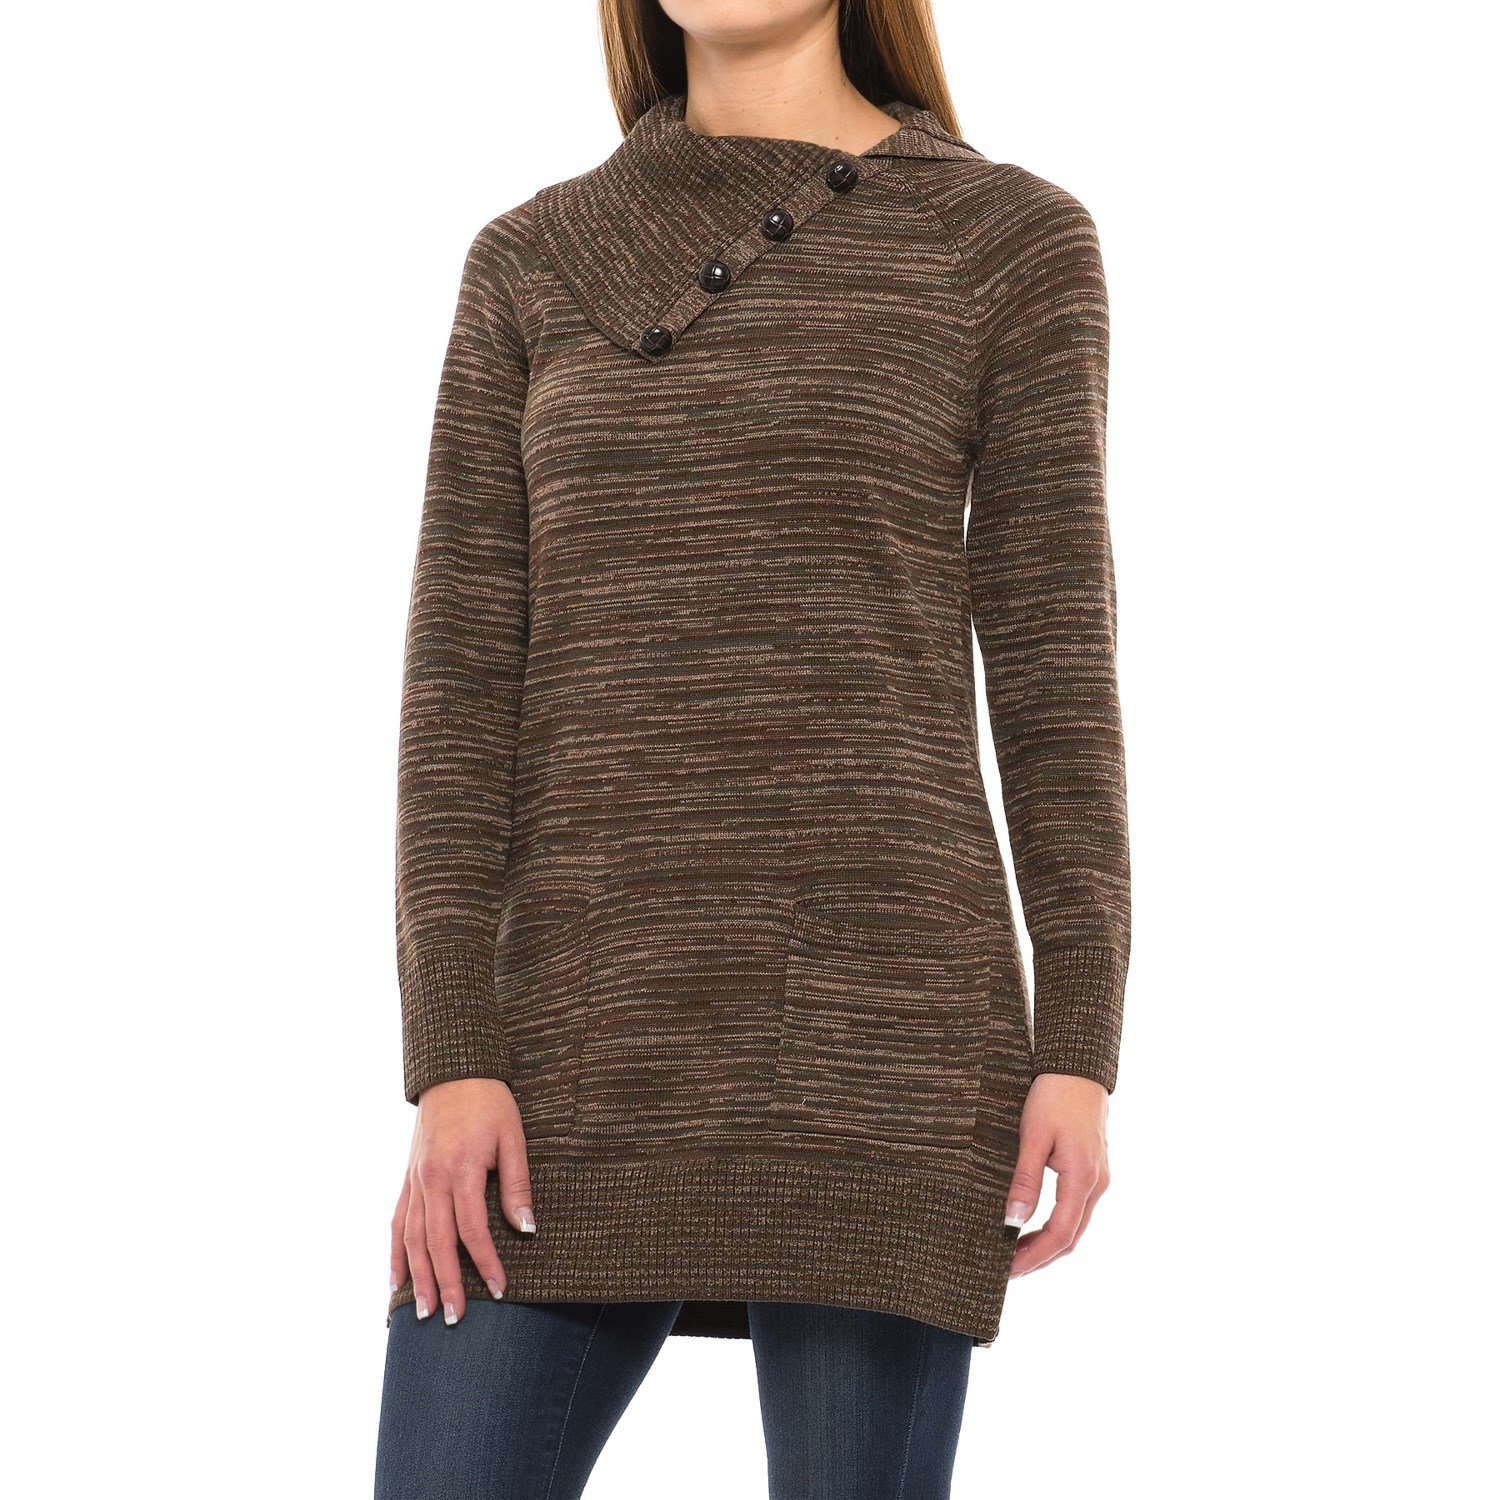 Eight Eight Eight Space-Dye Tunic Sweater (For Women) - Save 66%